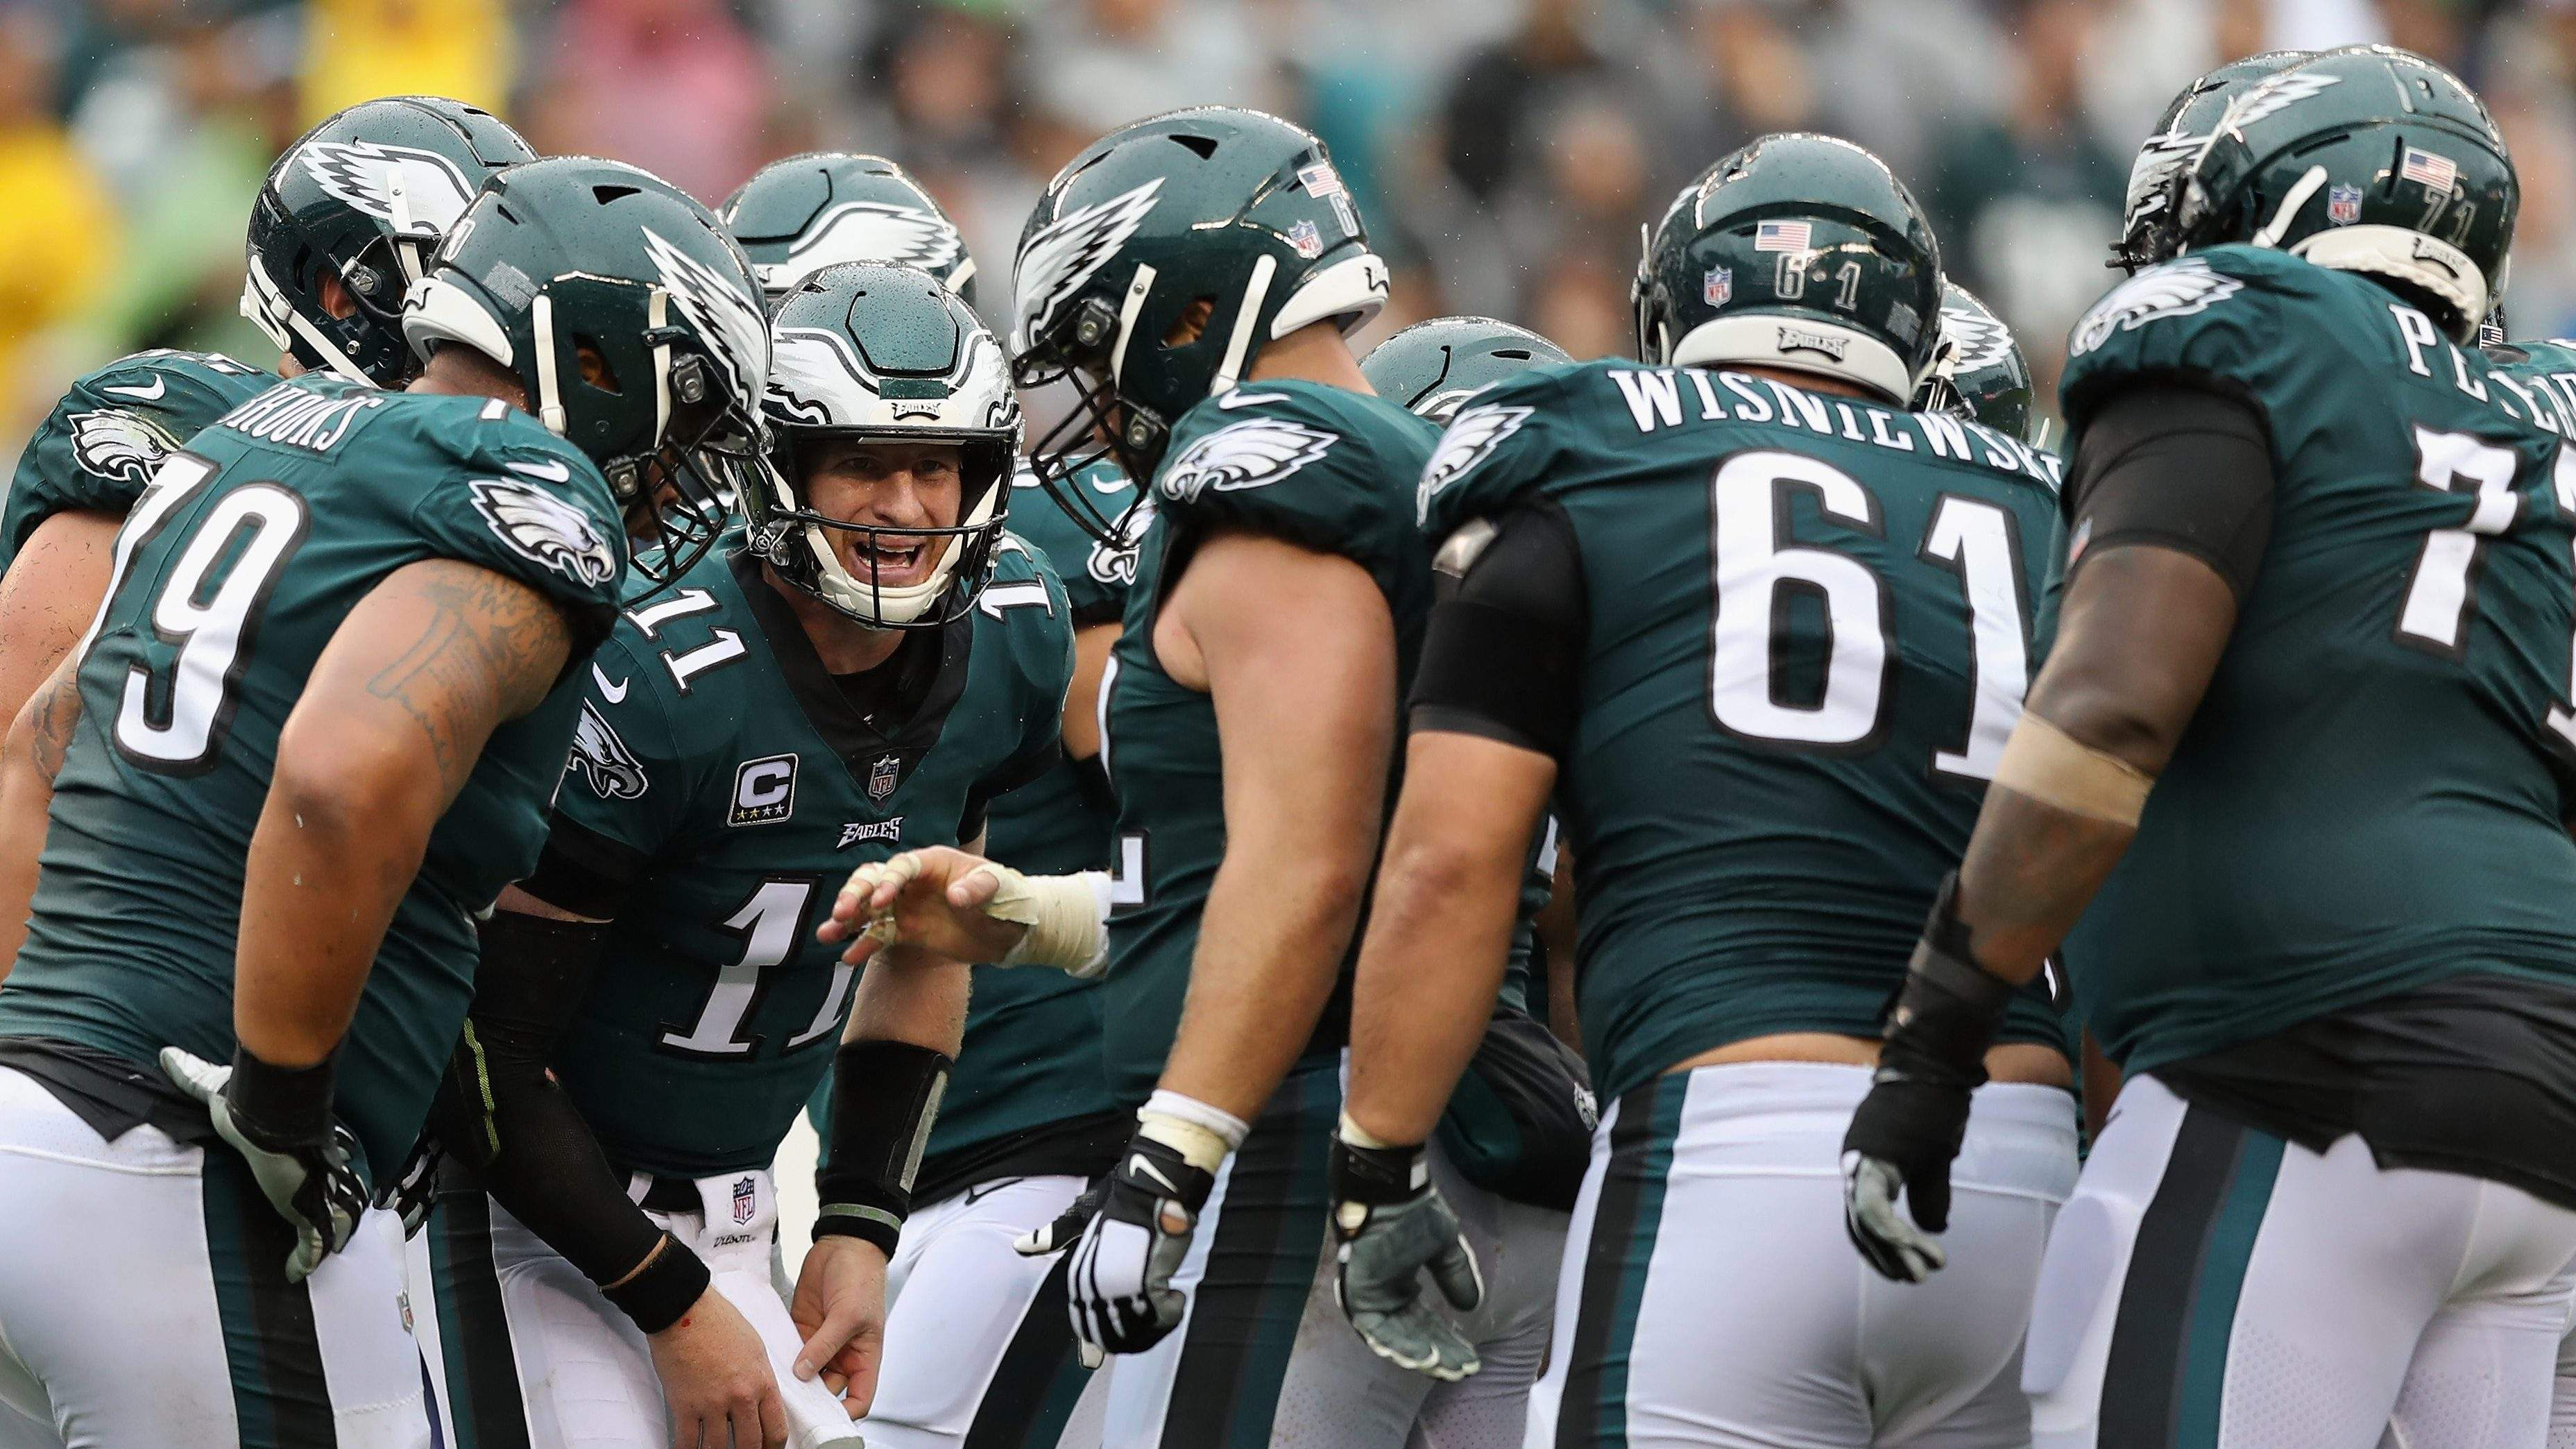 NFL Predictions Betting Odds for Eagles, Cowboys, Giants